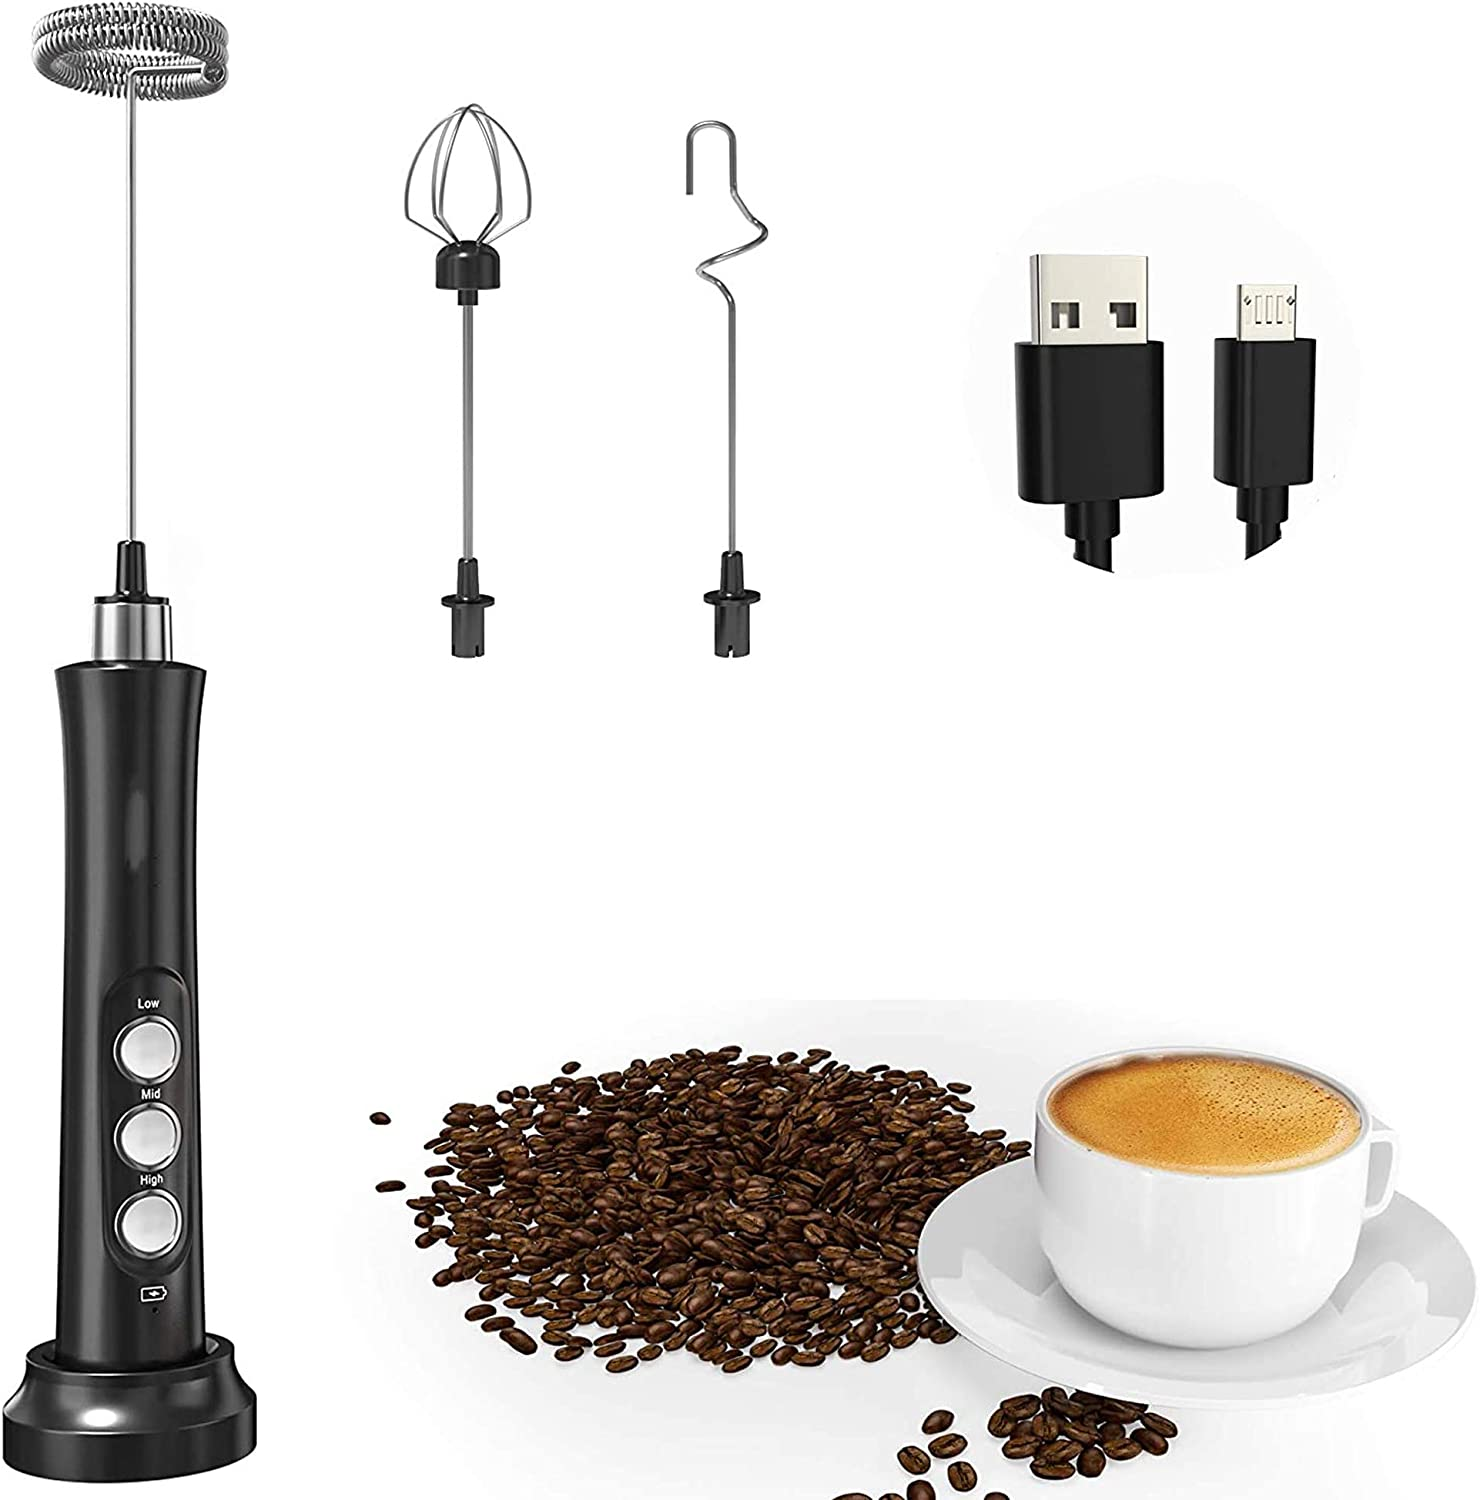 Milk Frother Handheld, USB Rechargeable 3 Speeds Mini Electric Milk Foam Maker Blender Mixer for Coffee, Latte, Cappuccino, Hot Chocolate,Milk Powder, Egg & Stainless Steel Stand Included (Black)